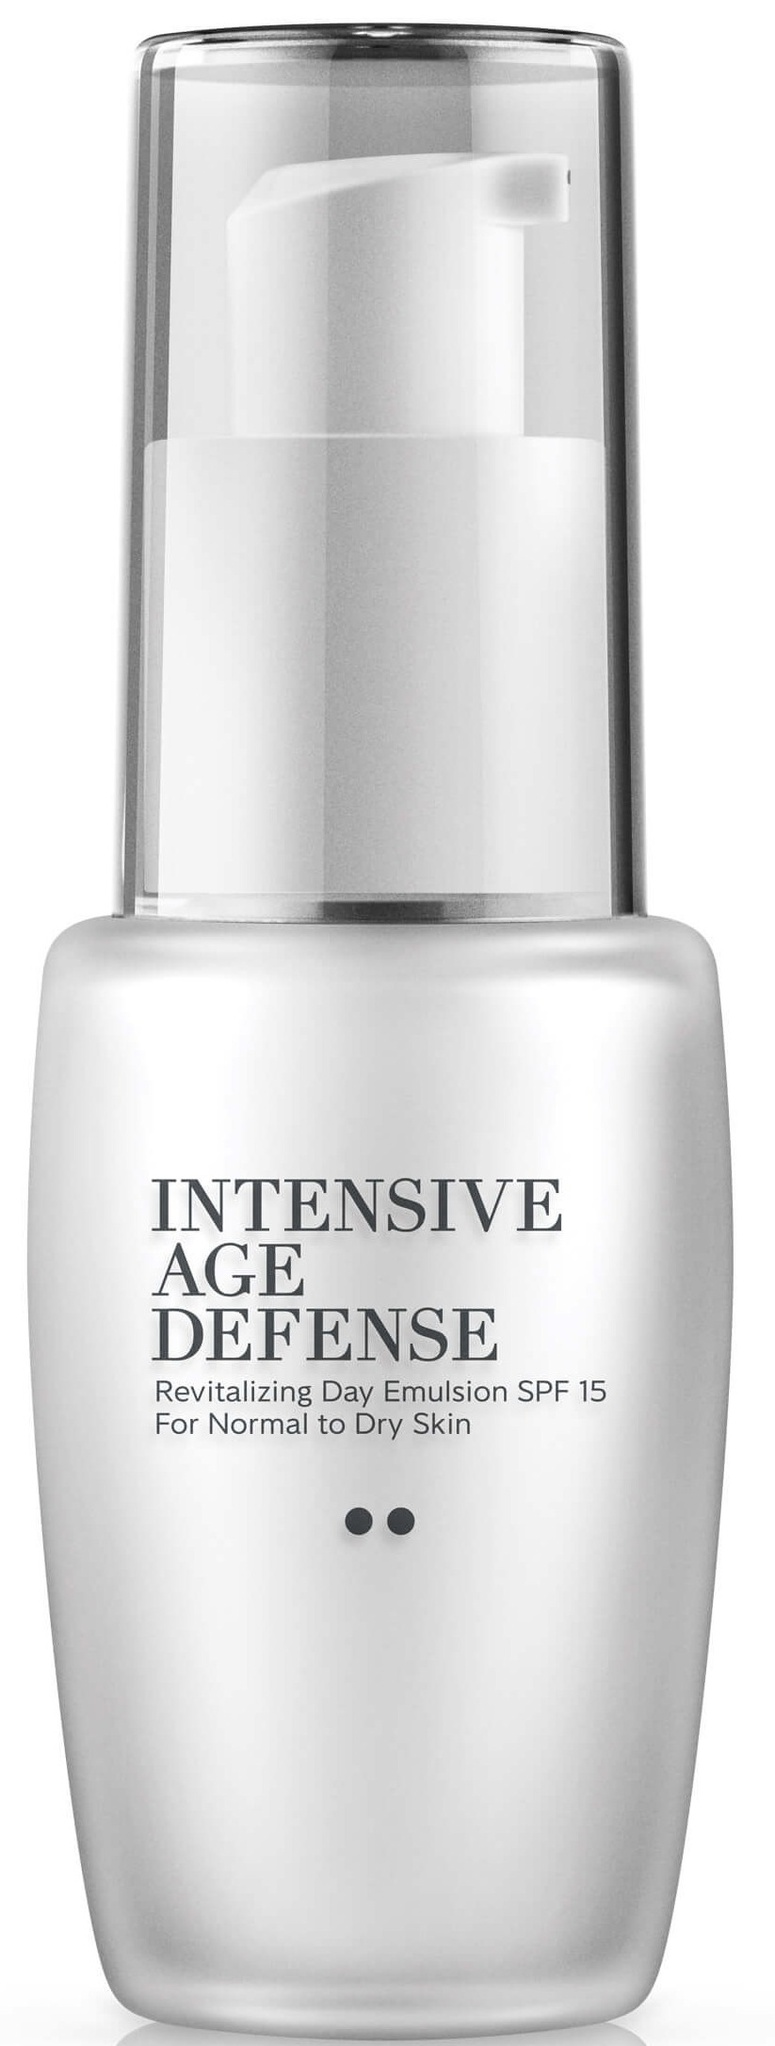 aviance Intensive Age Defense Revitalizing Day Emulsion SPF 15 For Normal To Dry Skin